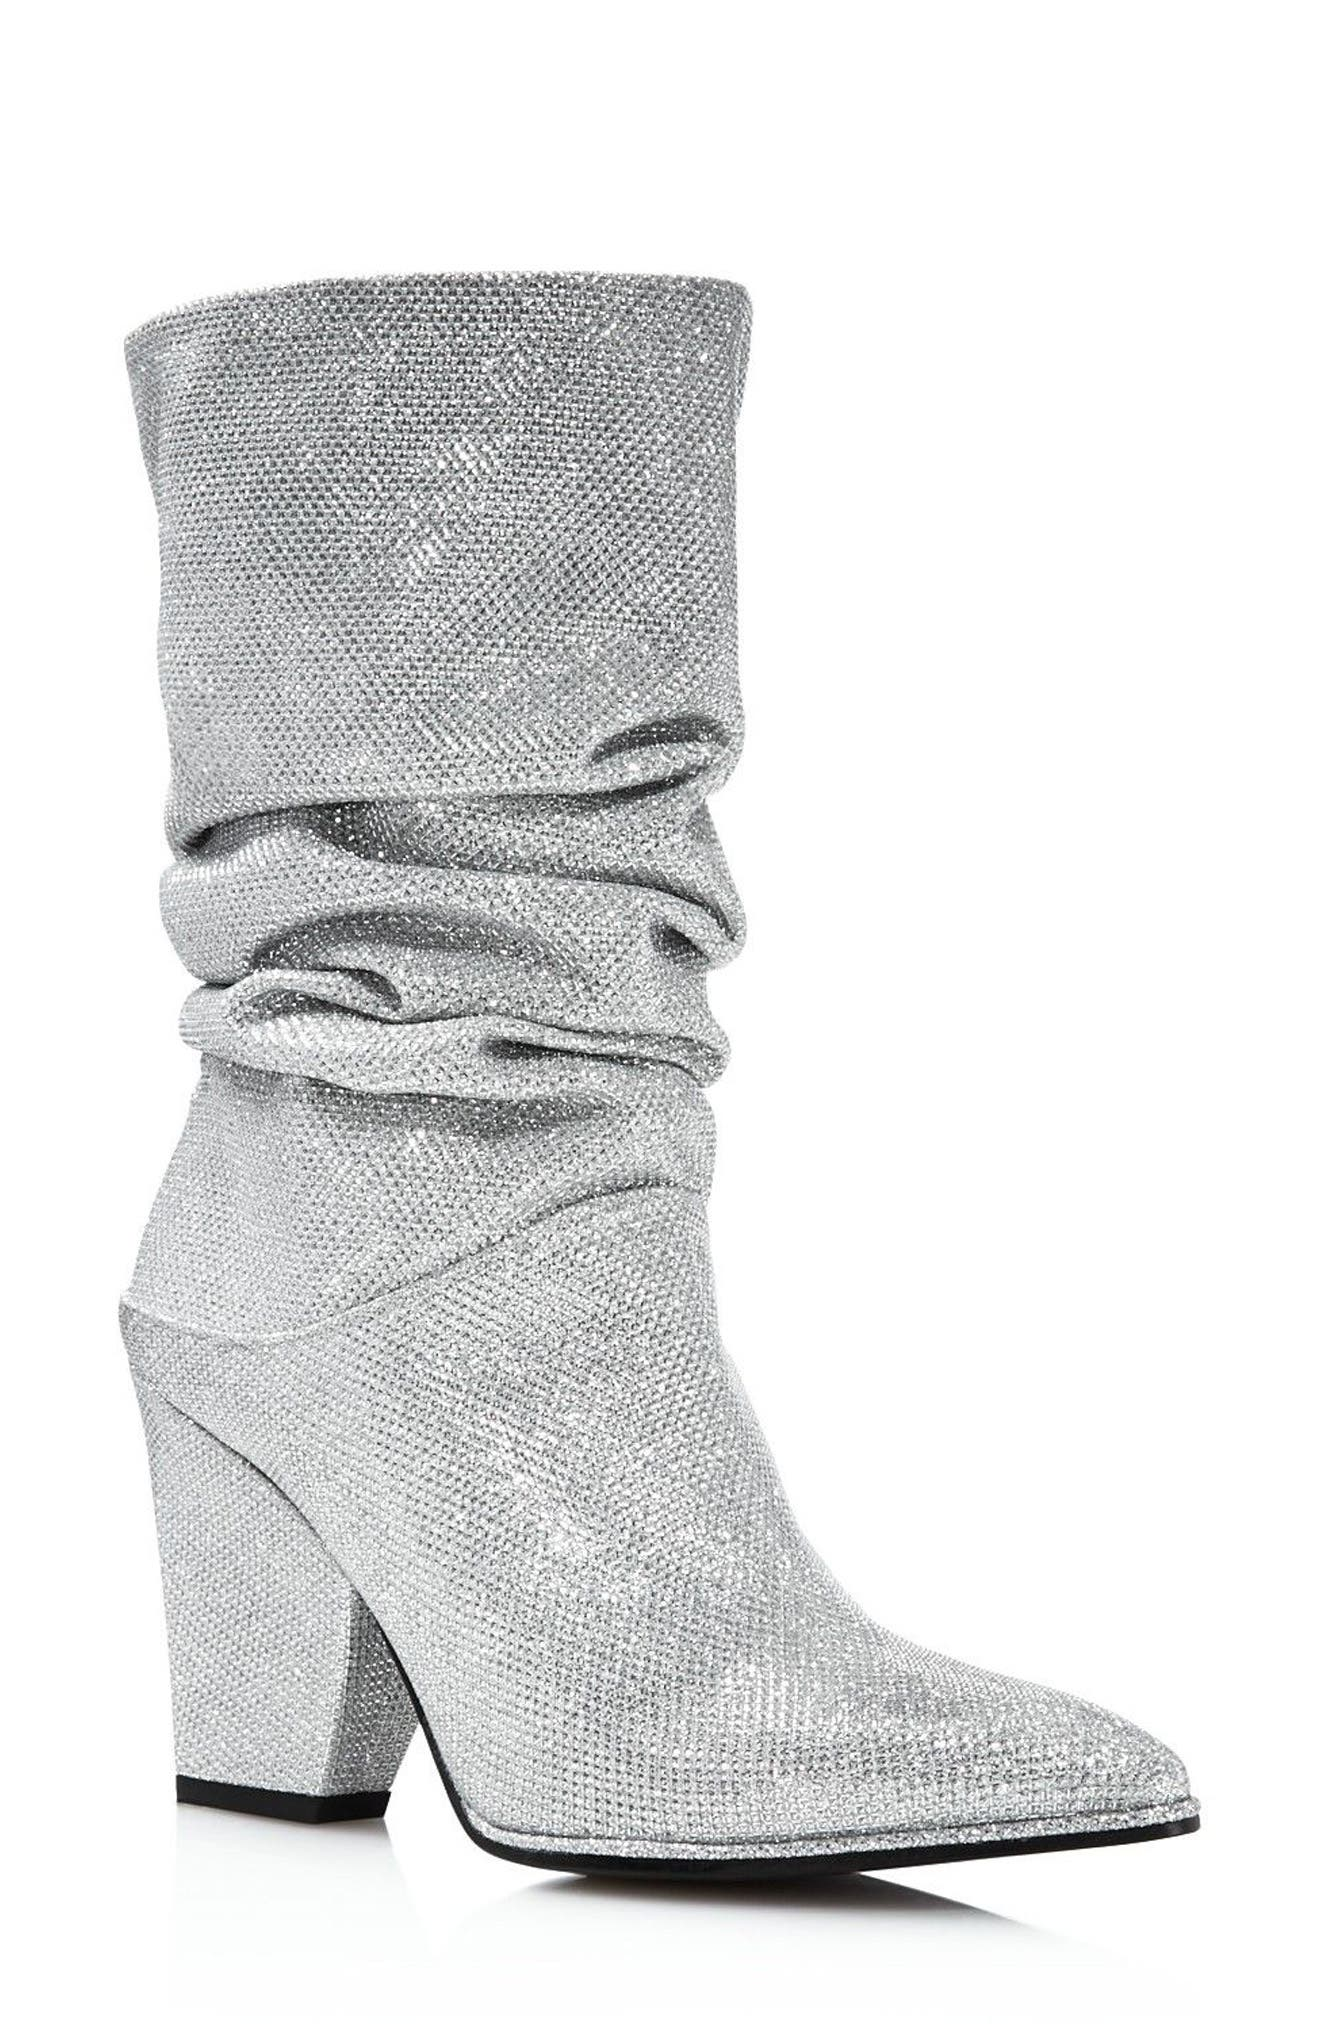 Crush Slouchy Bootie,                             Main thumbnail 1, color,